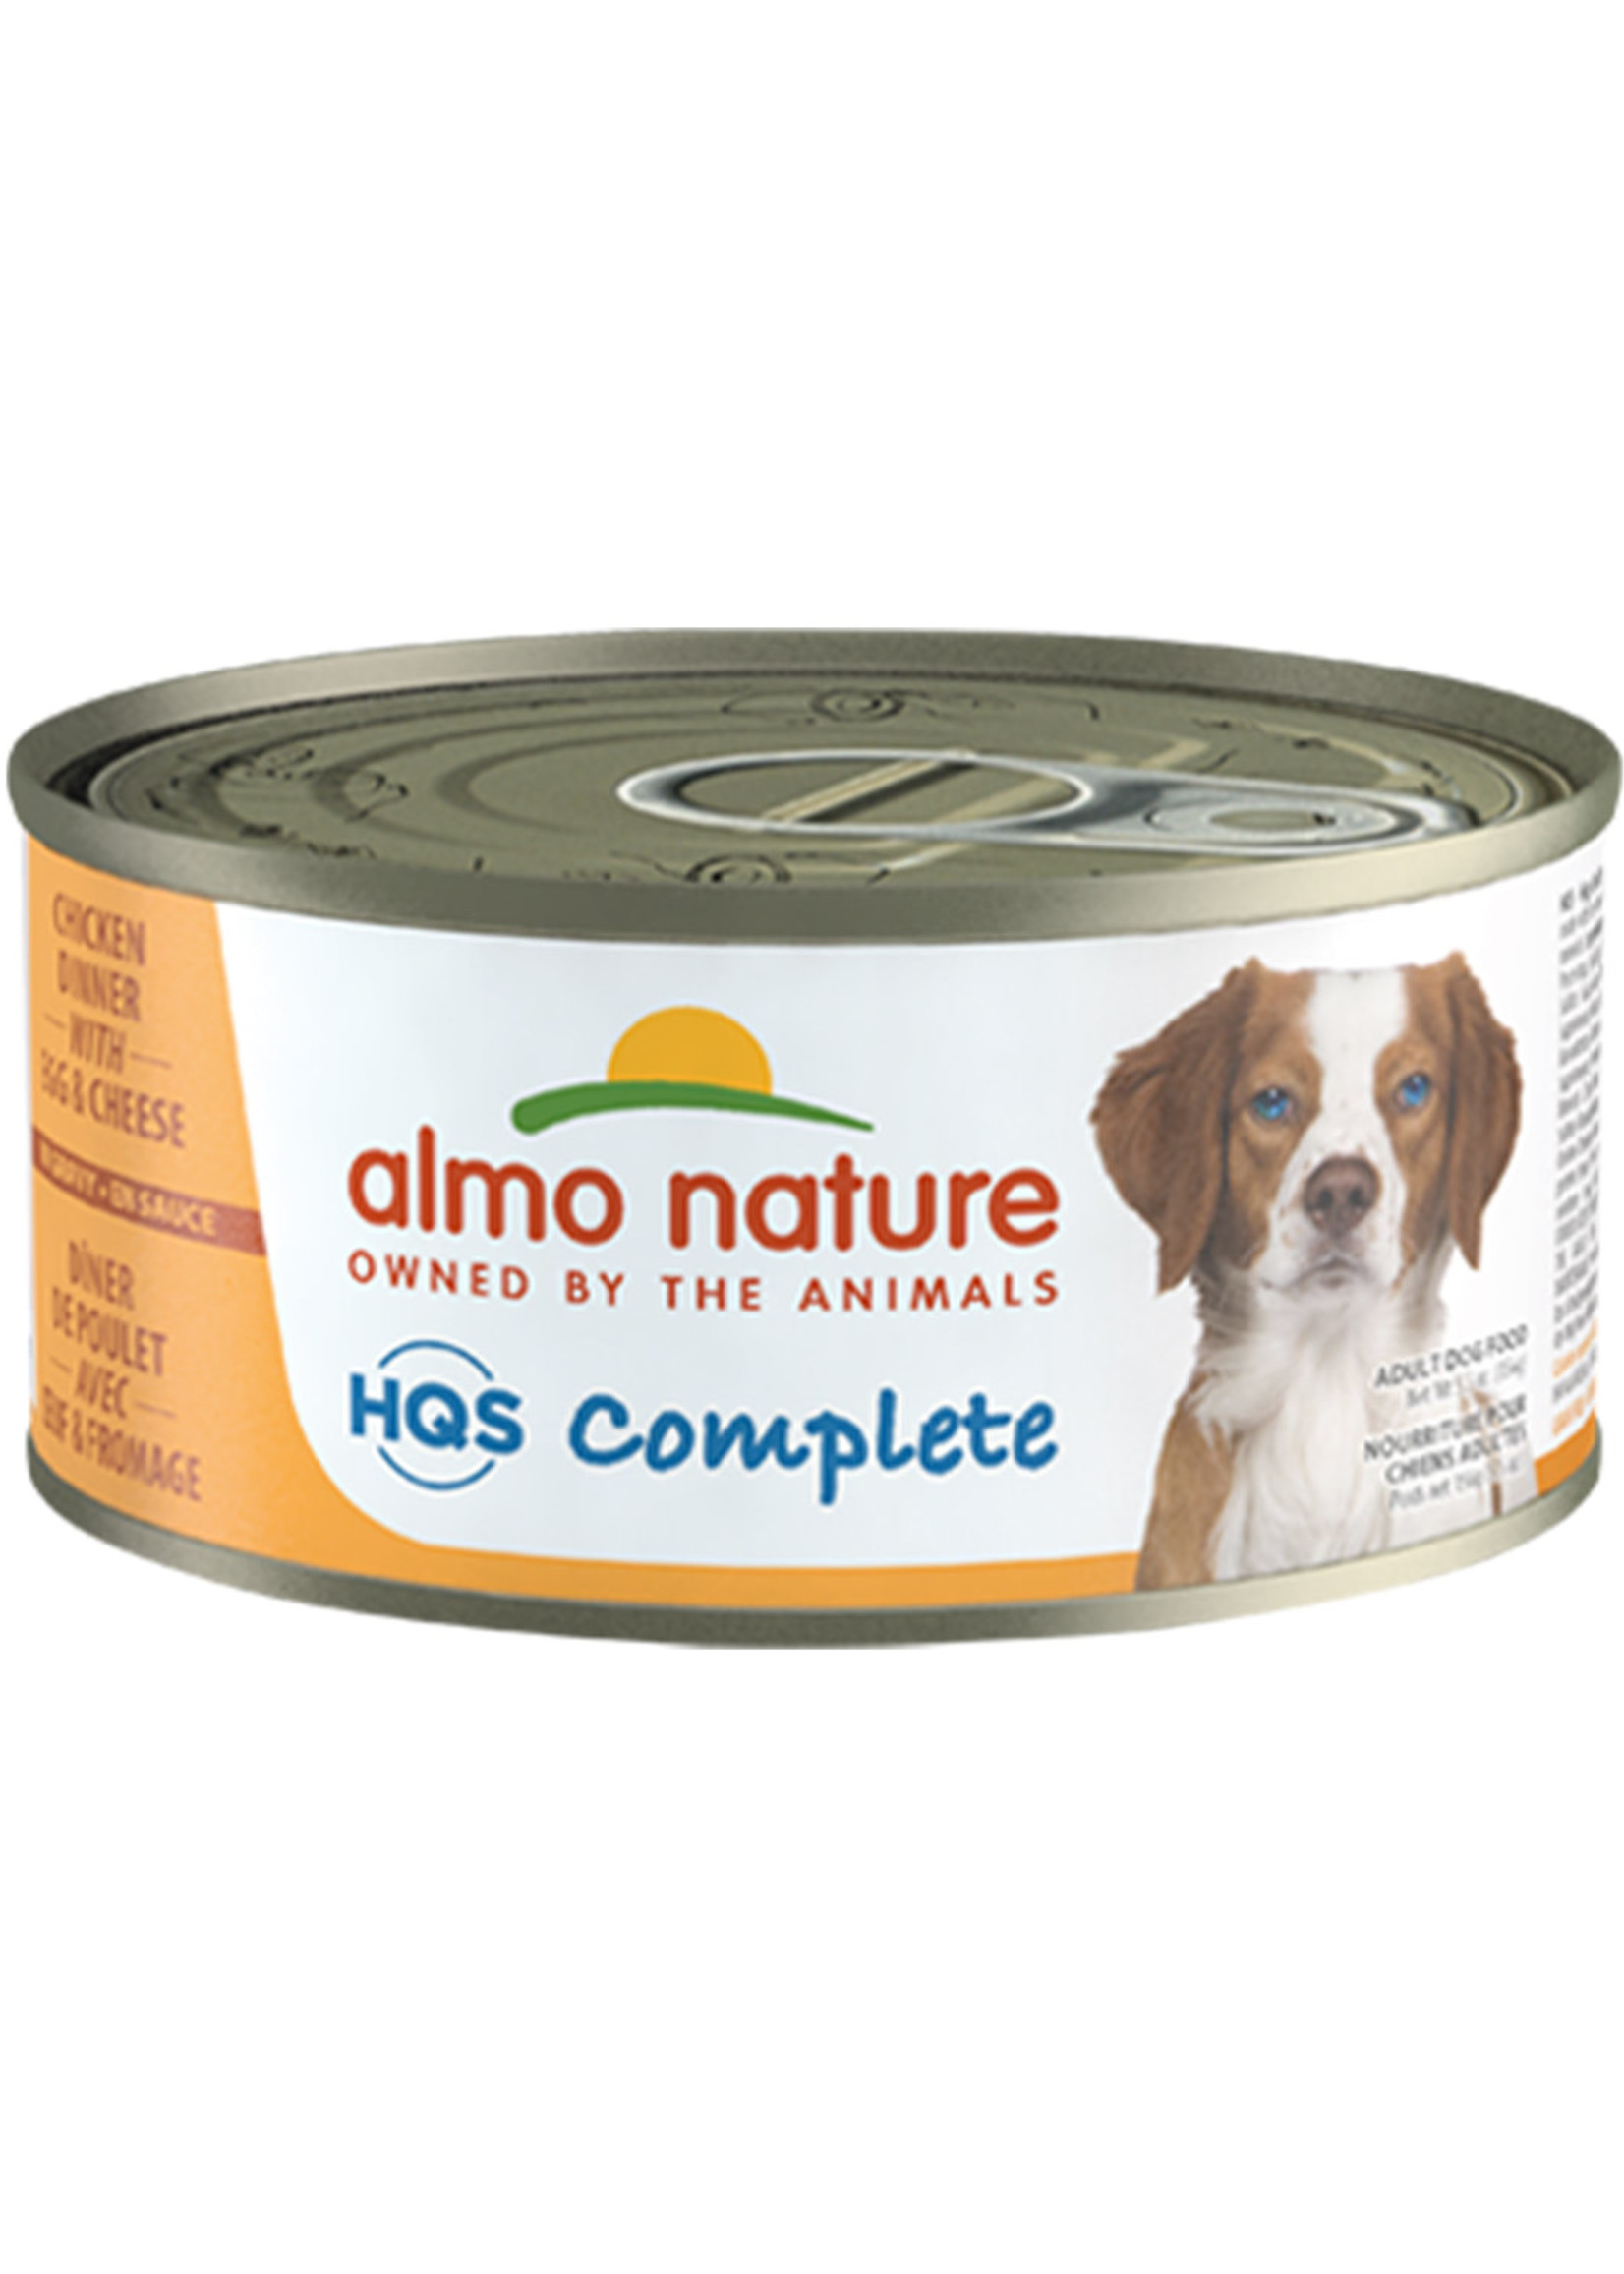 Almo Nature© Almo Nature HQS Complete Chicken Dinner with Egg and Cheese 156g